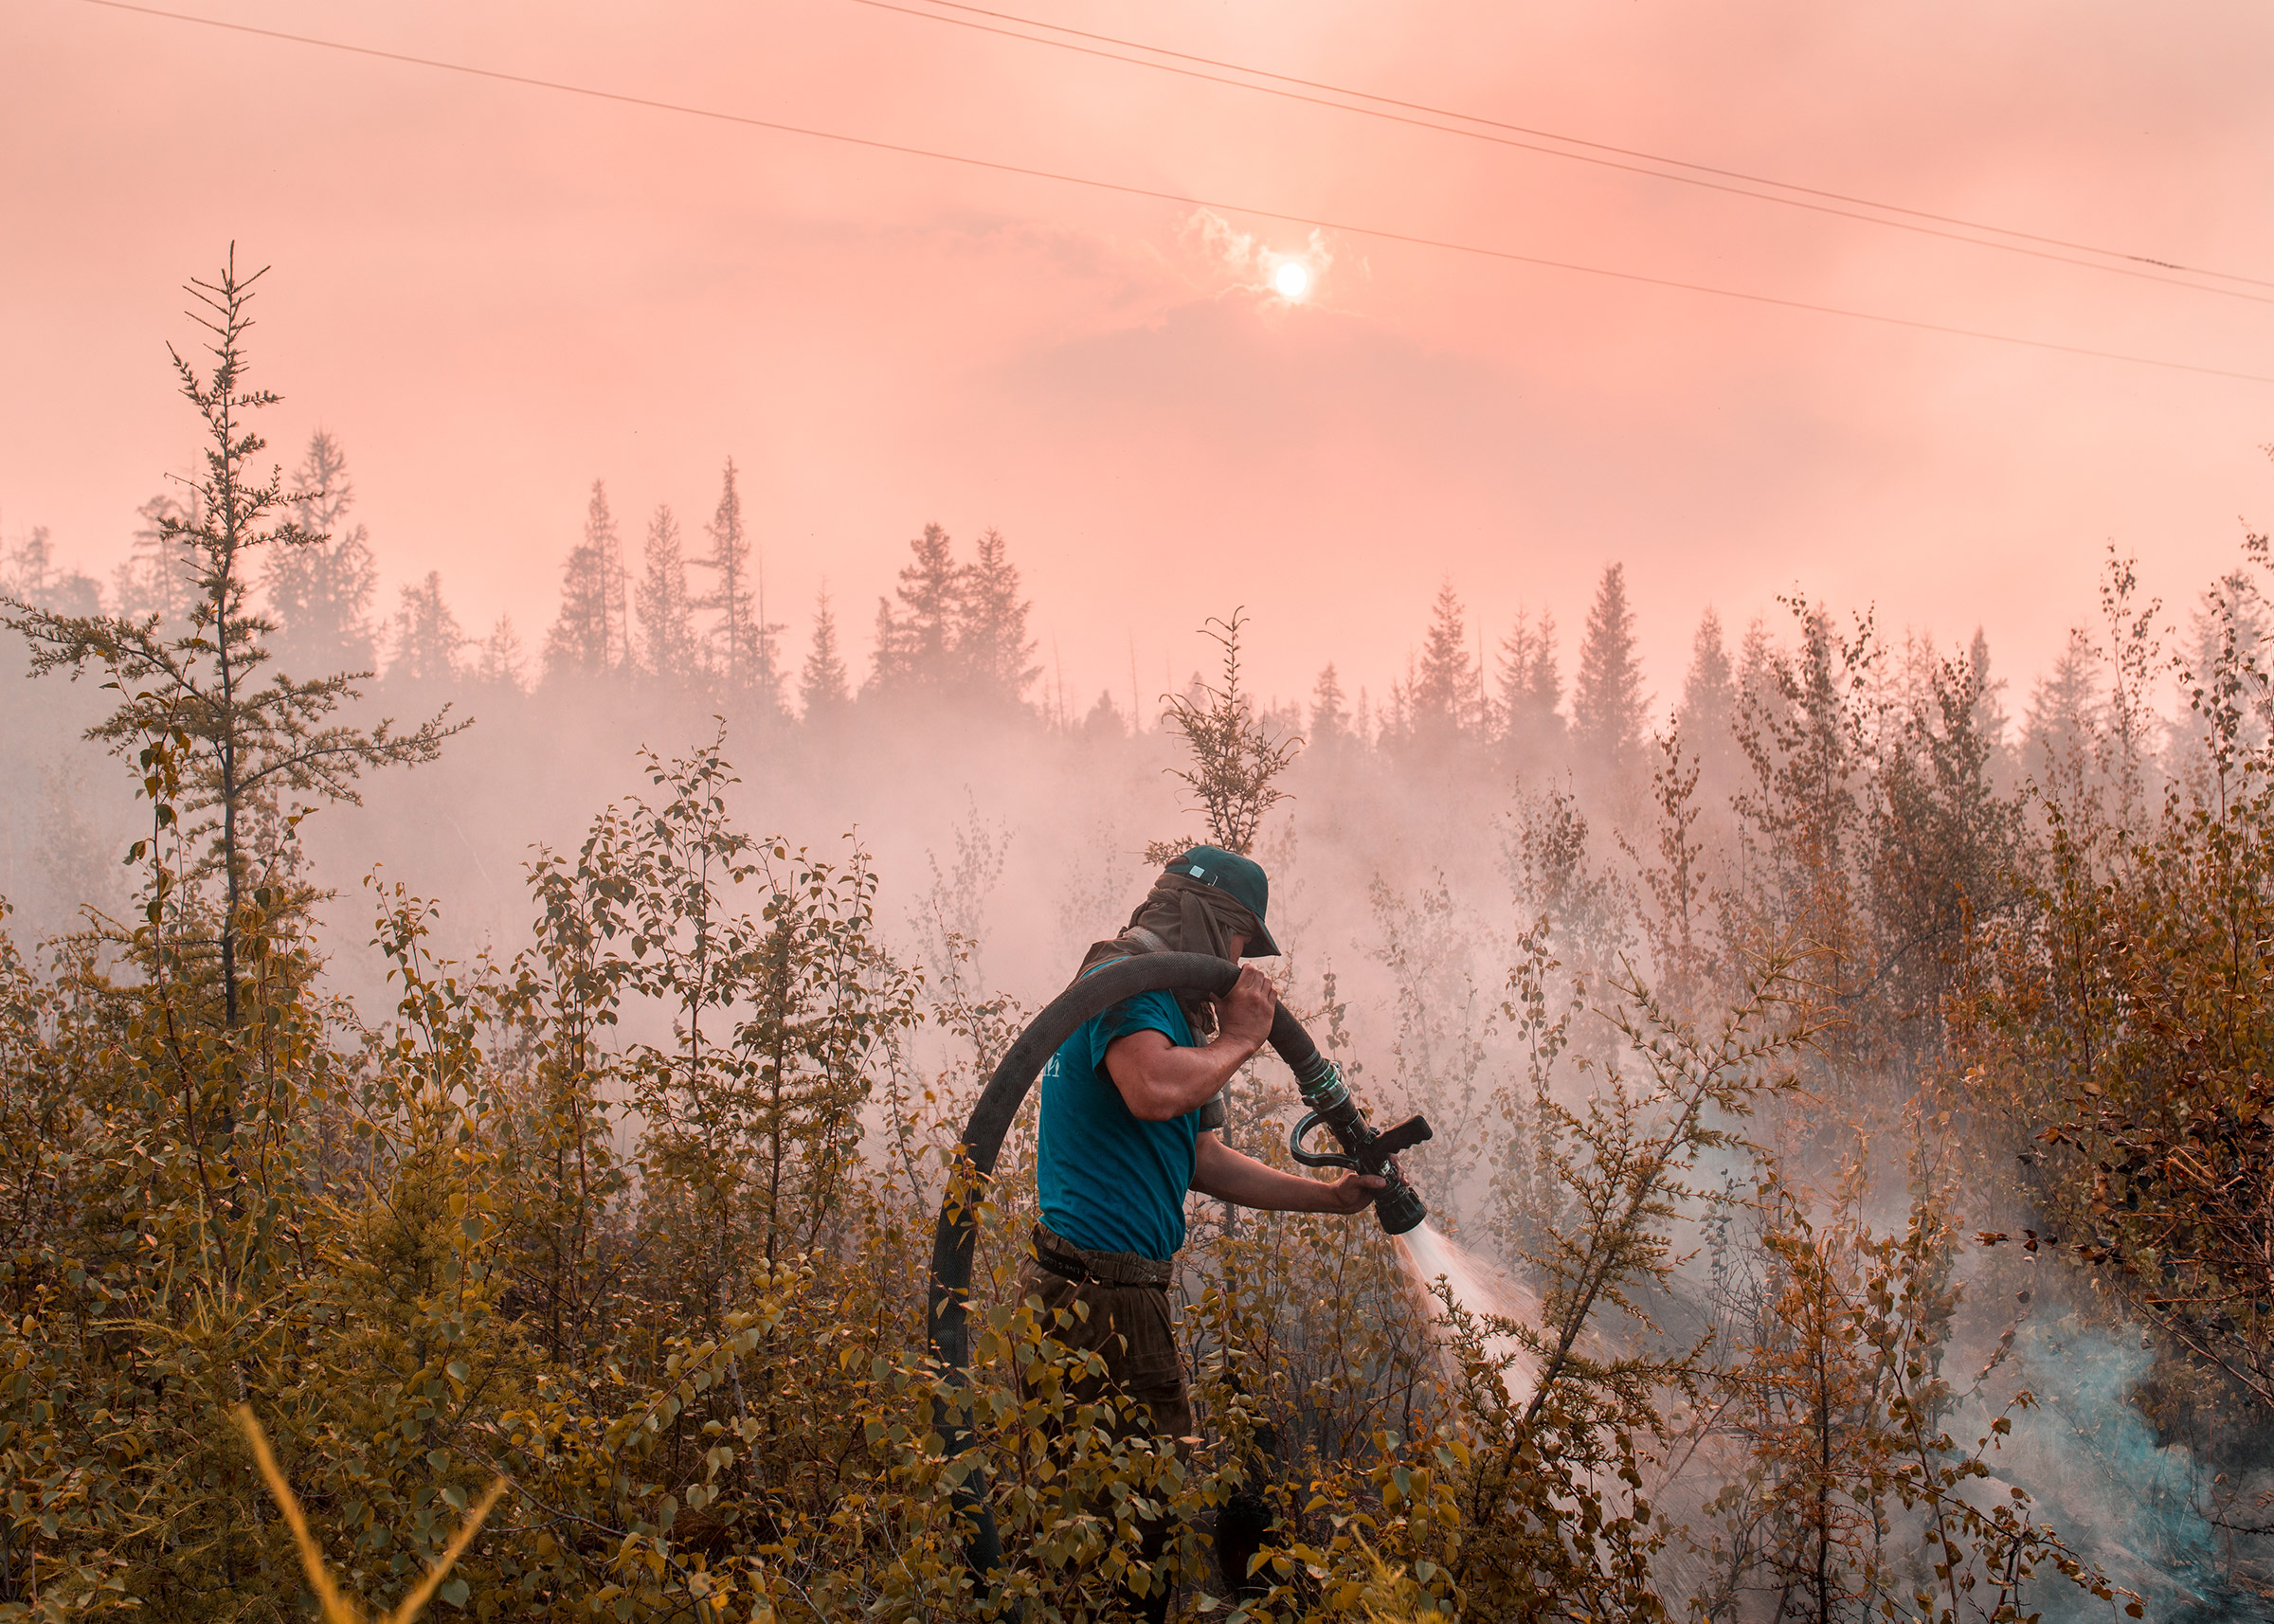 A firefighter extinguishes a grassroots fire near Kyuerelyakh.